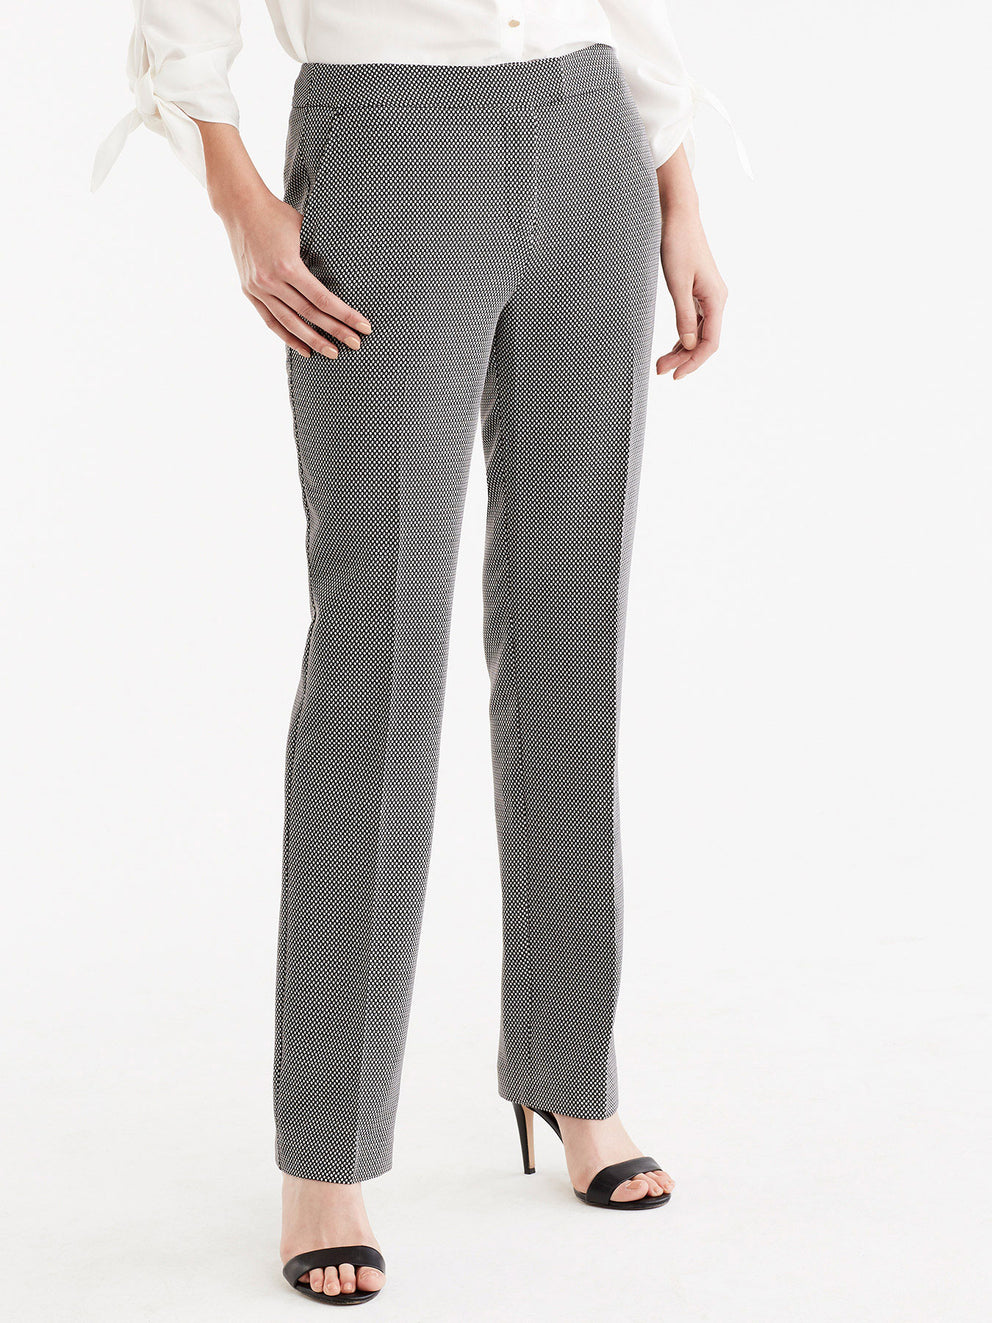 The Jones New York Printed Sydney Pant in color Black Ivory - Image Position 3